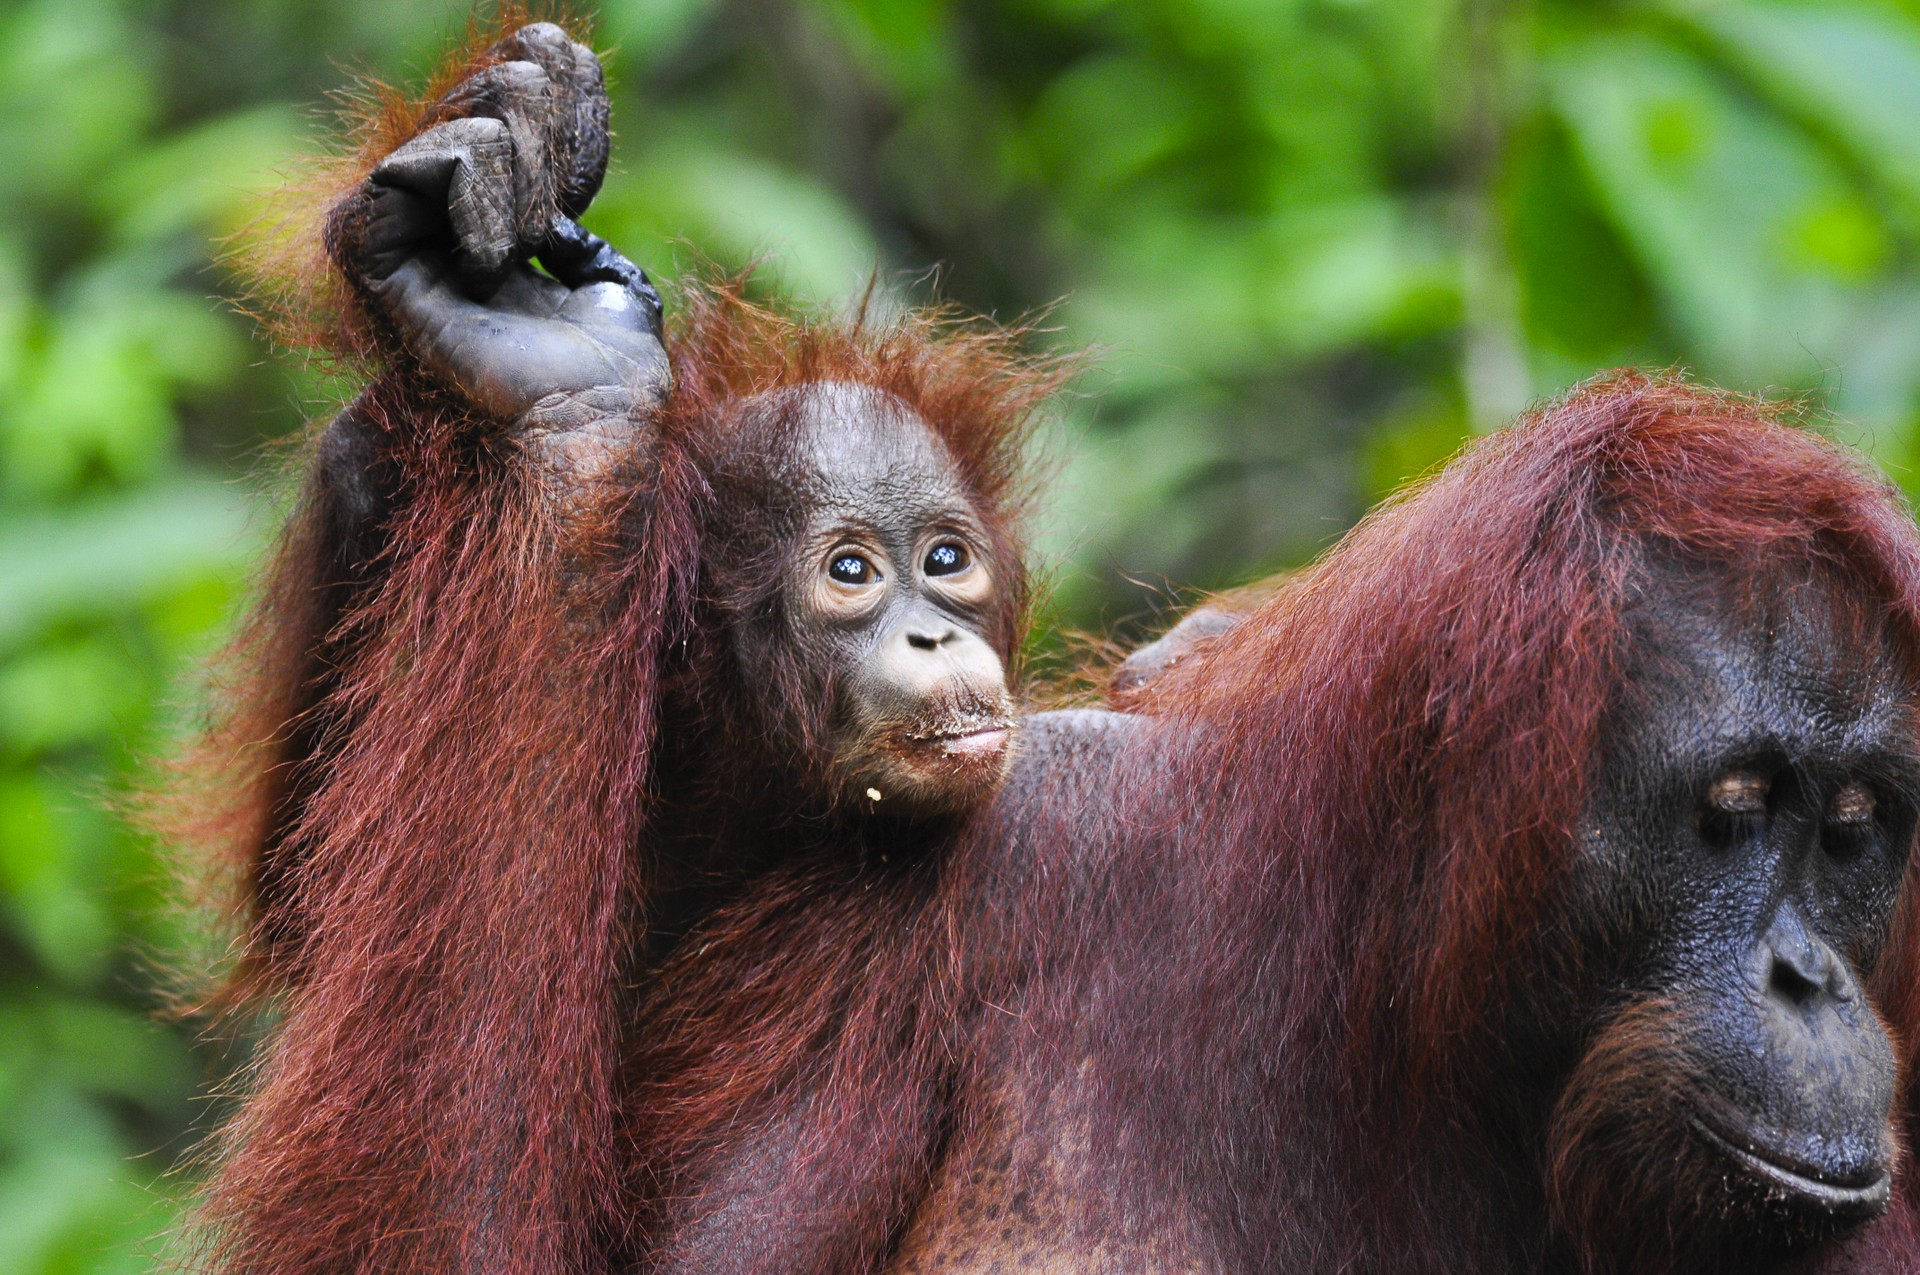 A baby orangutan on its mother's back in Tanjung Puting, Indonesia